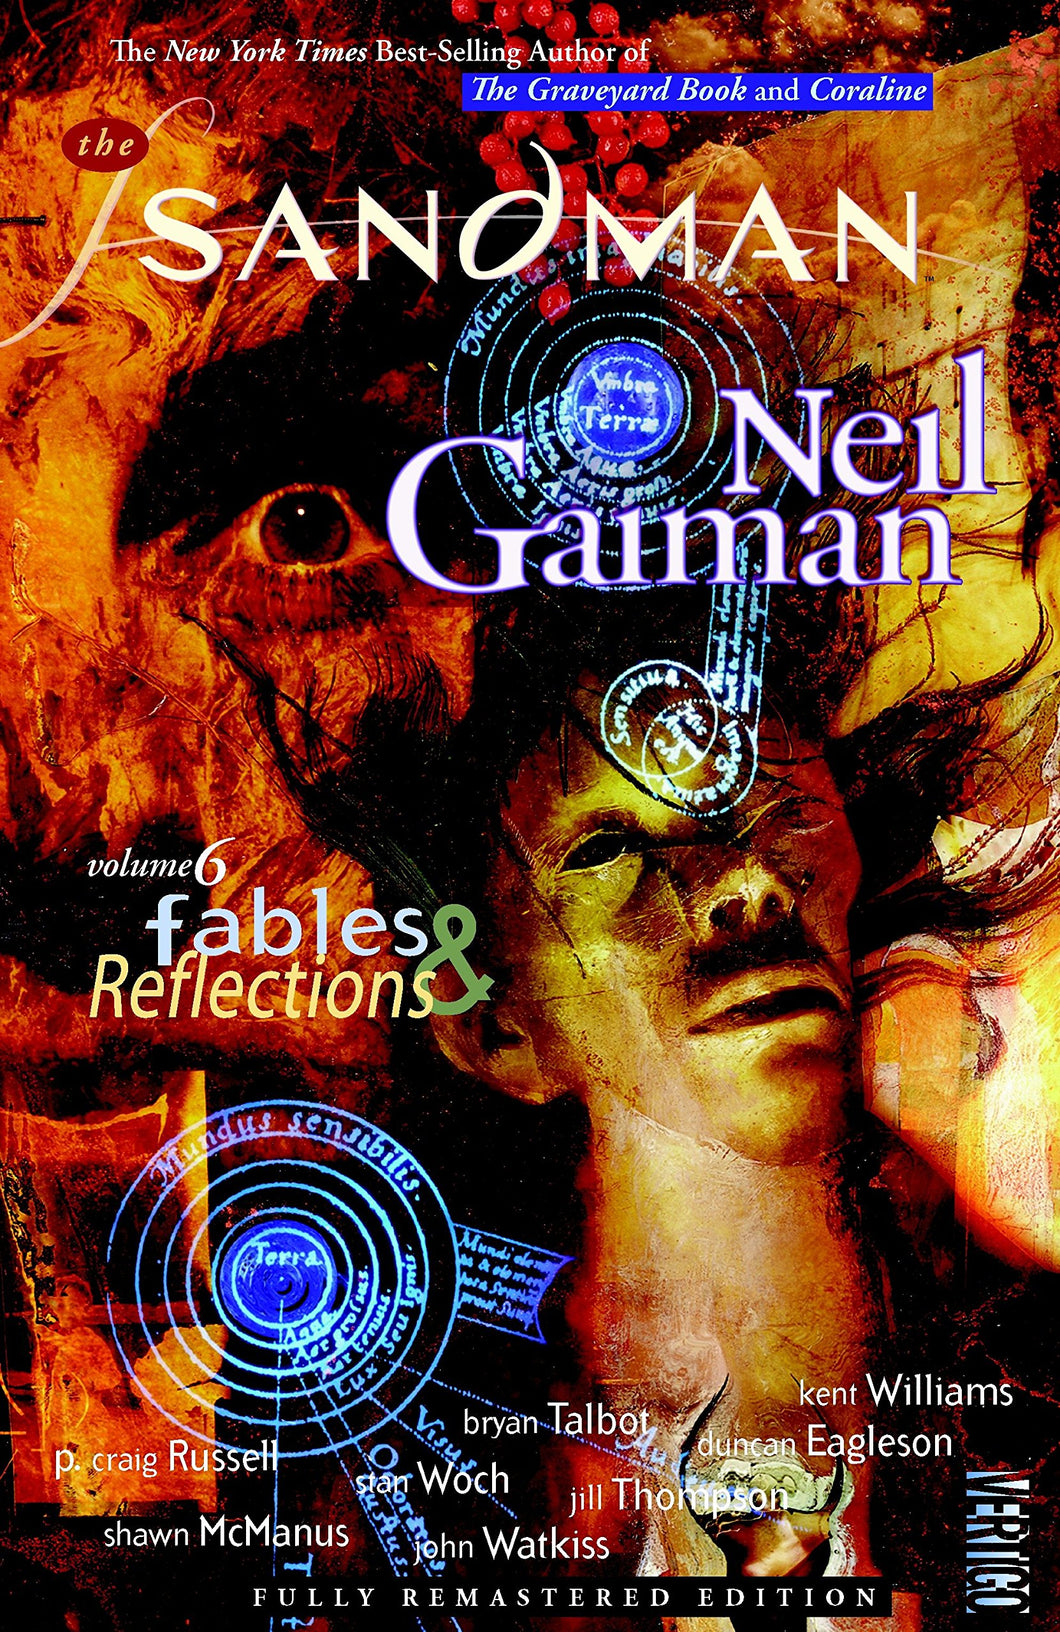 The Sandman, Vol. 6: Fables and Reflections by Neil Gaiman